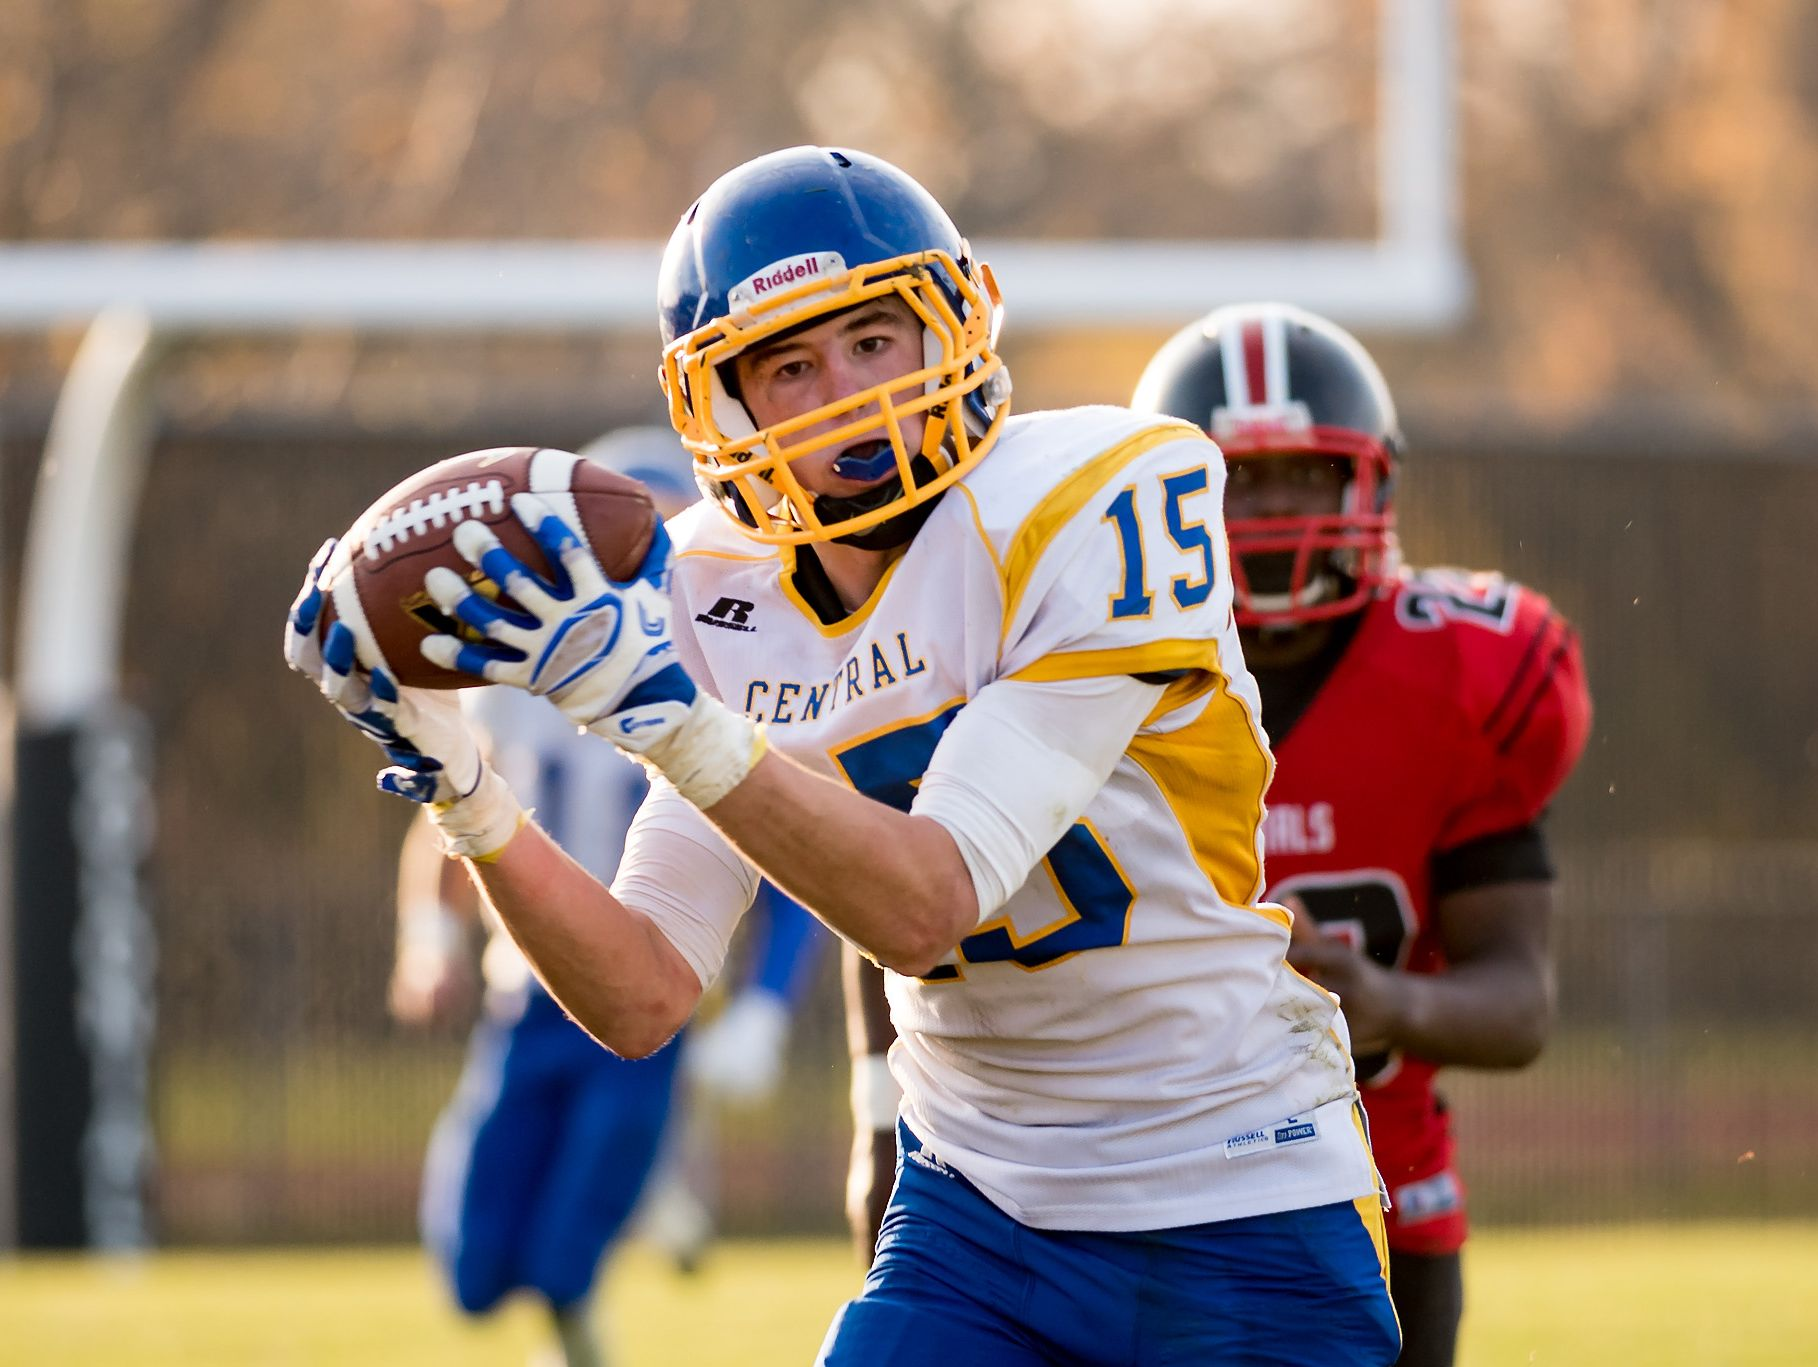 Mark Tolson of Sussex Central makes a catch as Sussex Central plays at William Penn in the opening round of DIAA Division II playoffs.